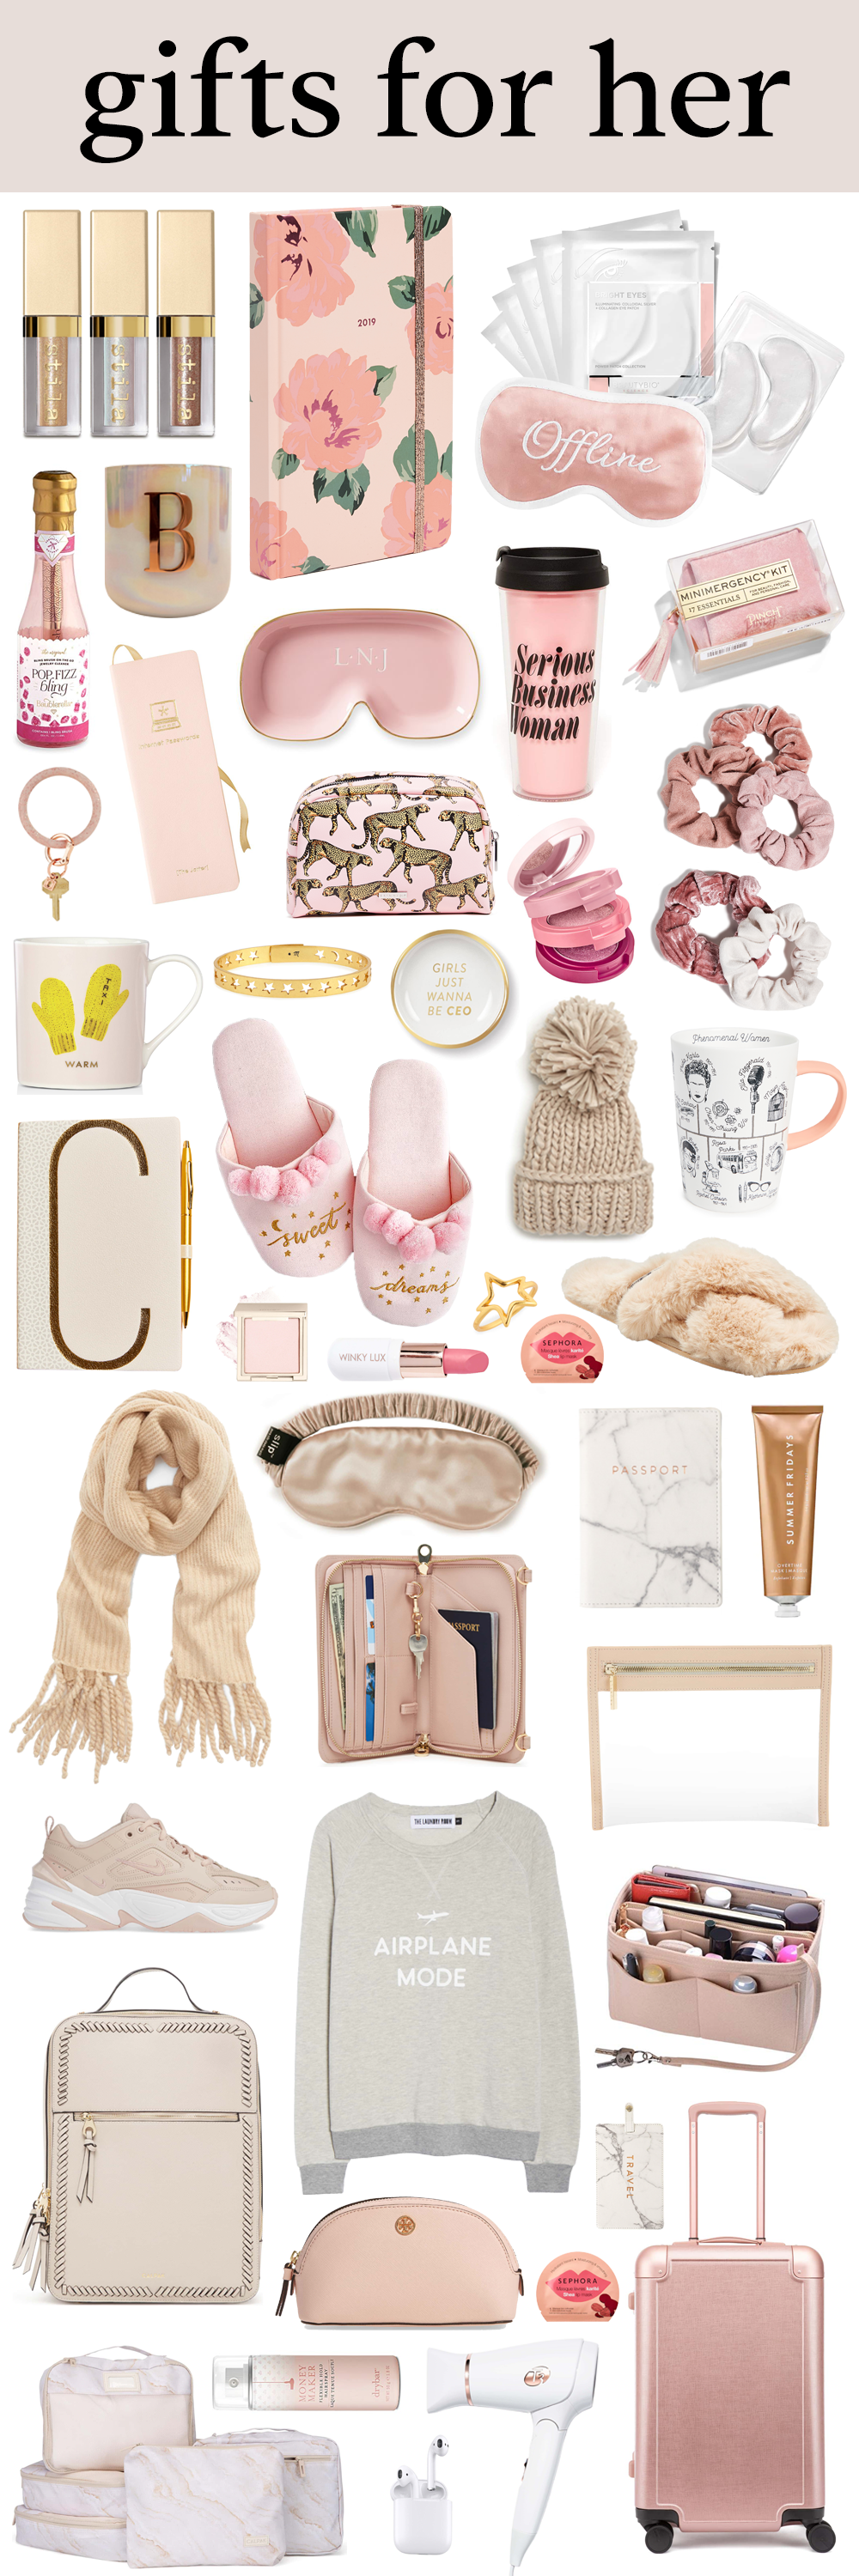 Ultimate Holiday Gift Guide #giftsforsister